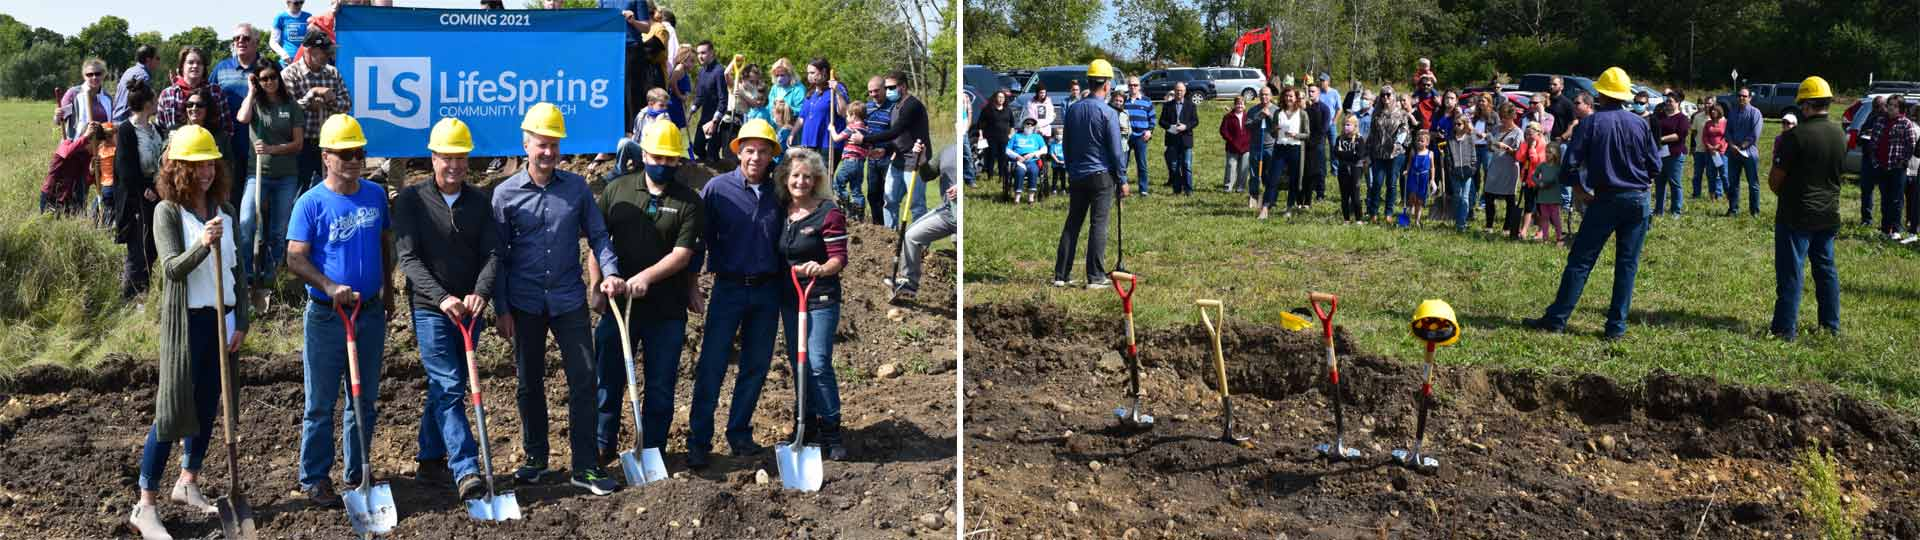 Two Photographs of people breaking ground and speaking to a crowd at the Place to Gather groundbraking ceremony